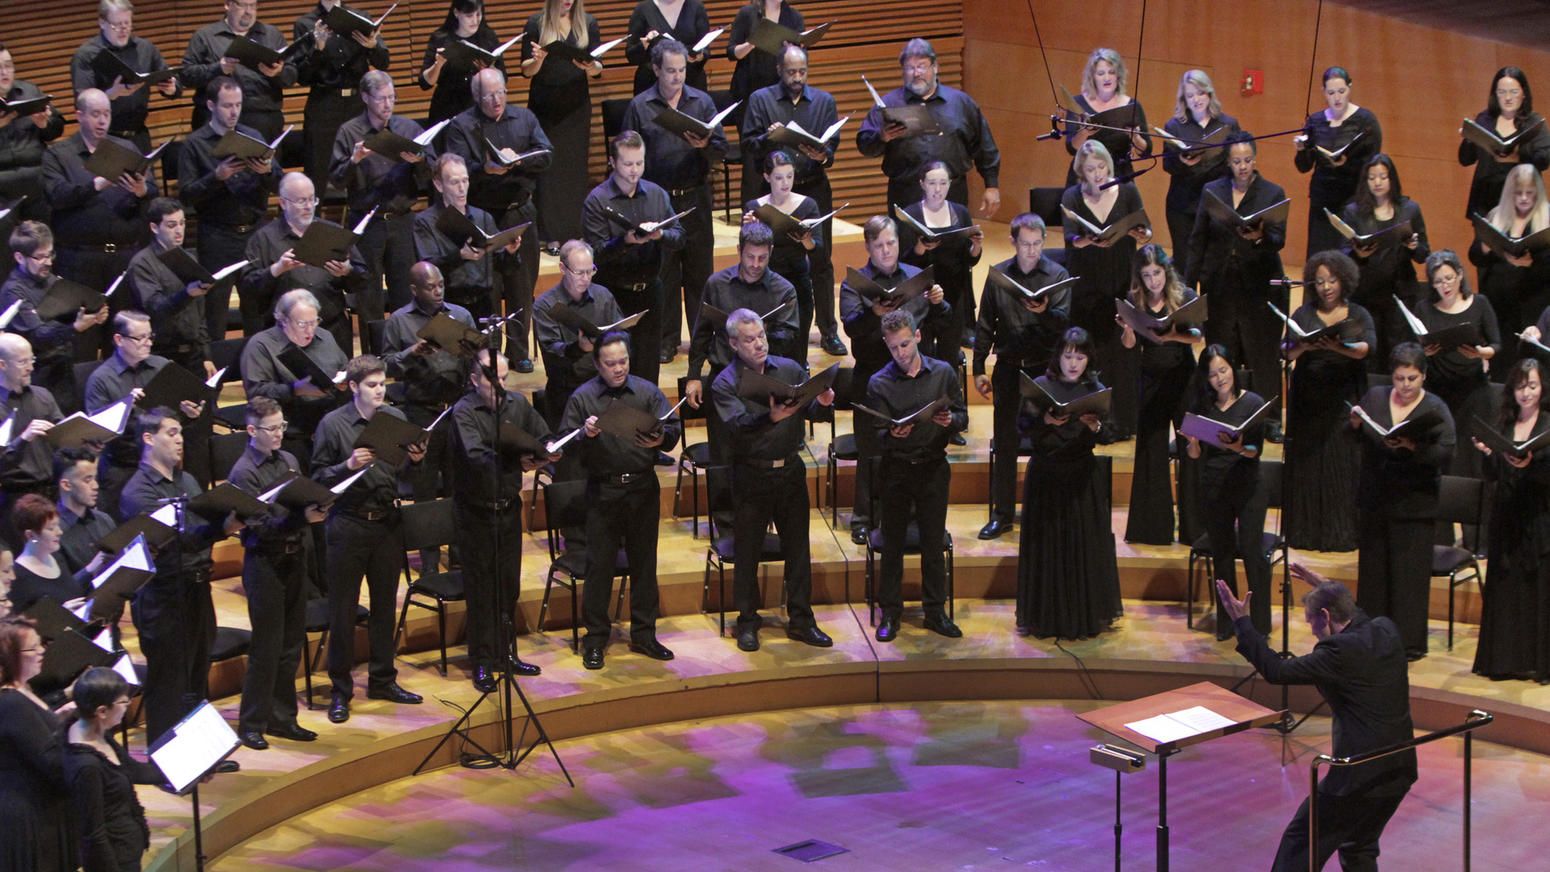 Music director Grant Gershon conducts the Los Angeles Master Chorale at Walt Disney Concert Hall. (Lawrence K. Ho / Los Angeles Times)